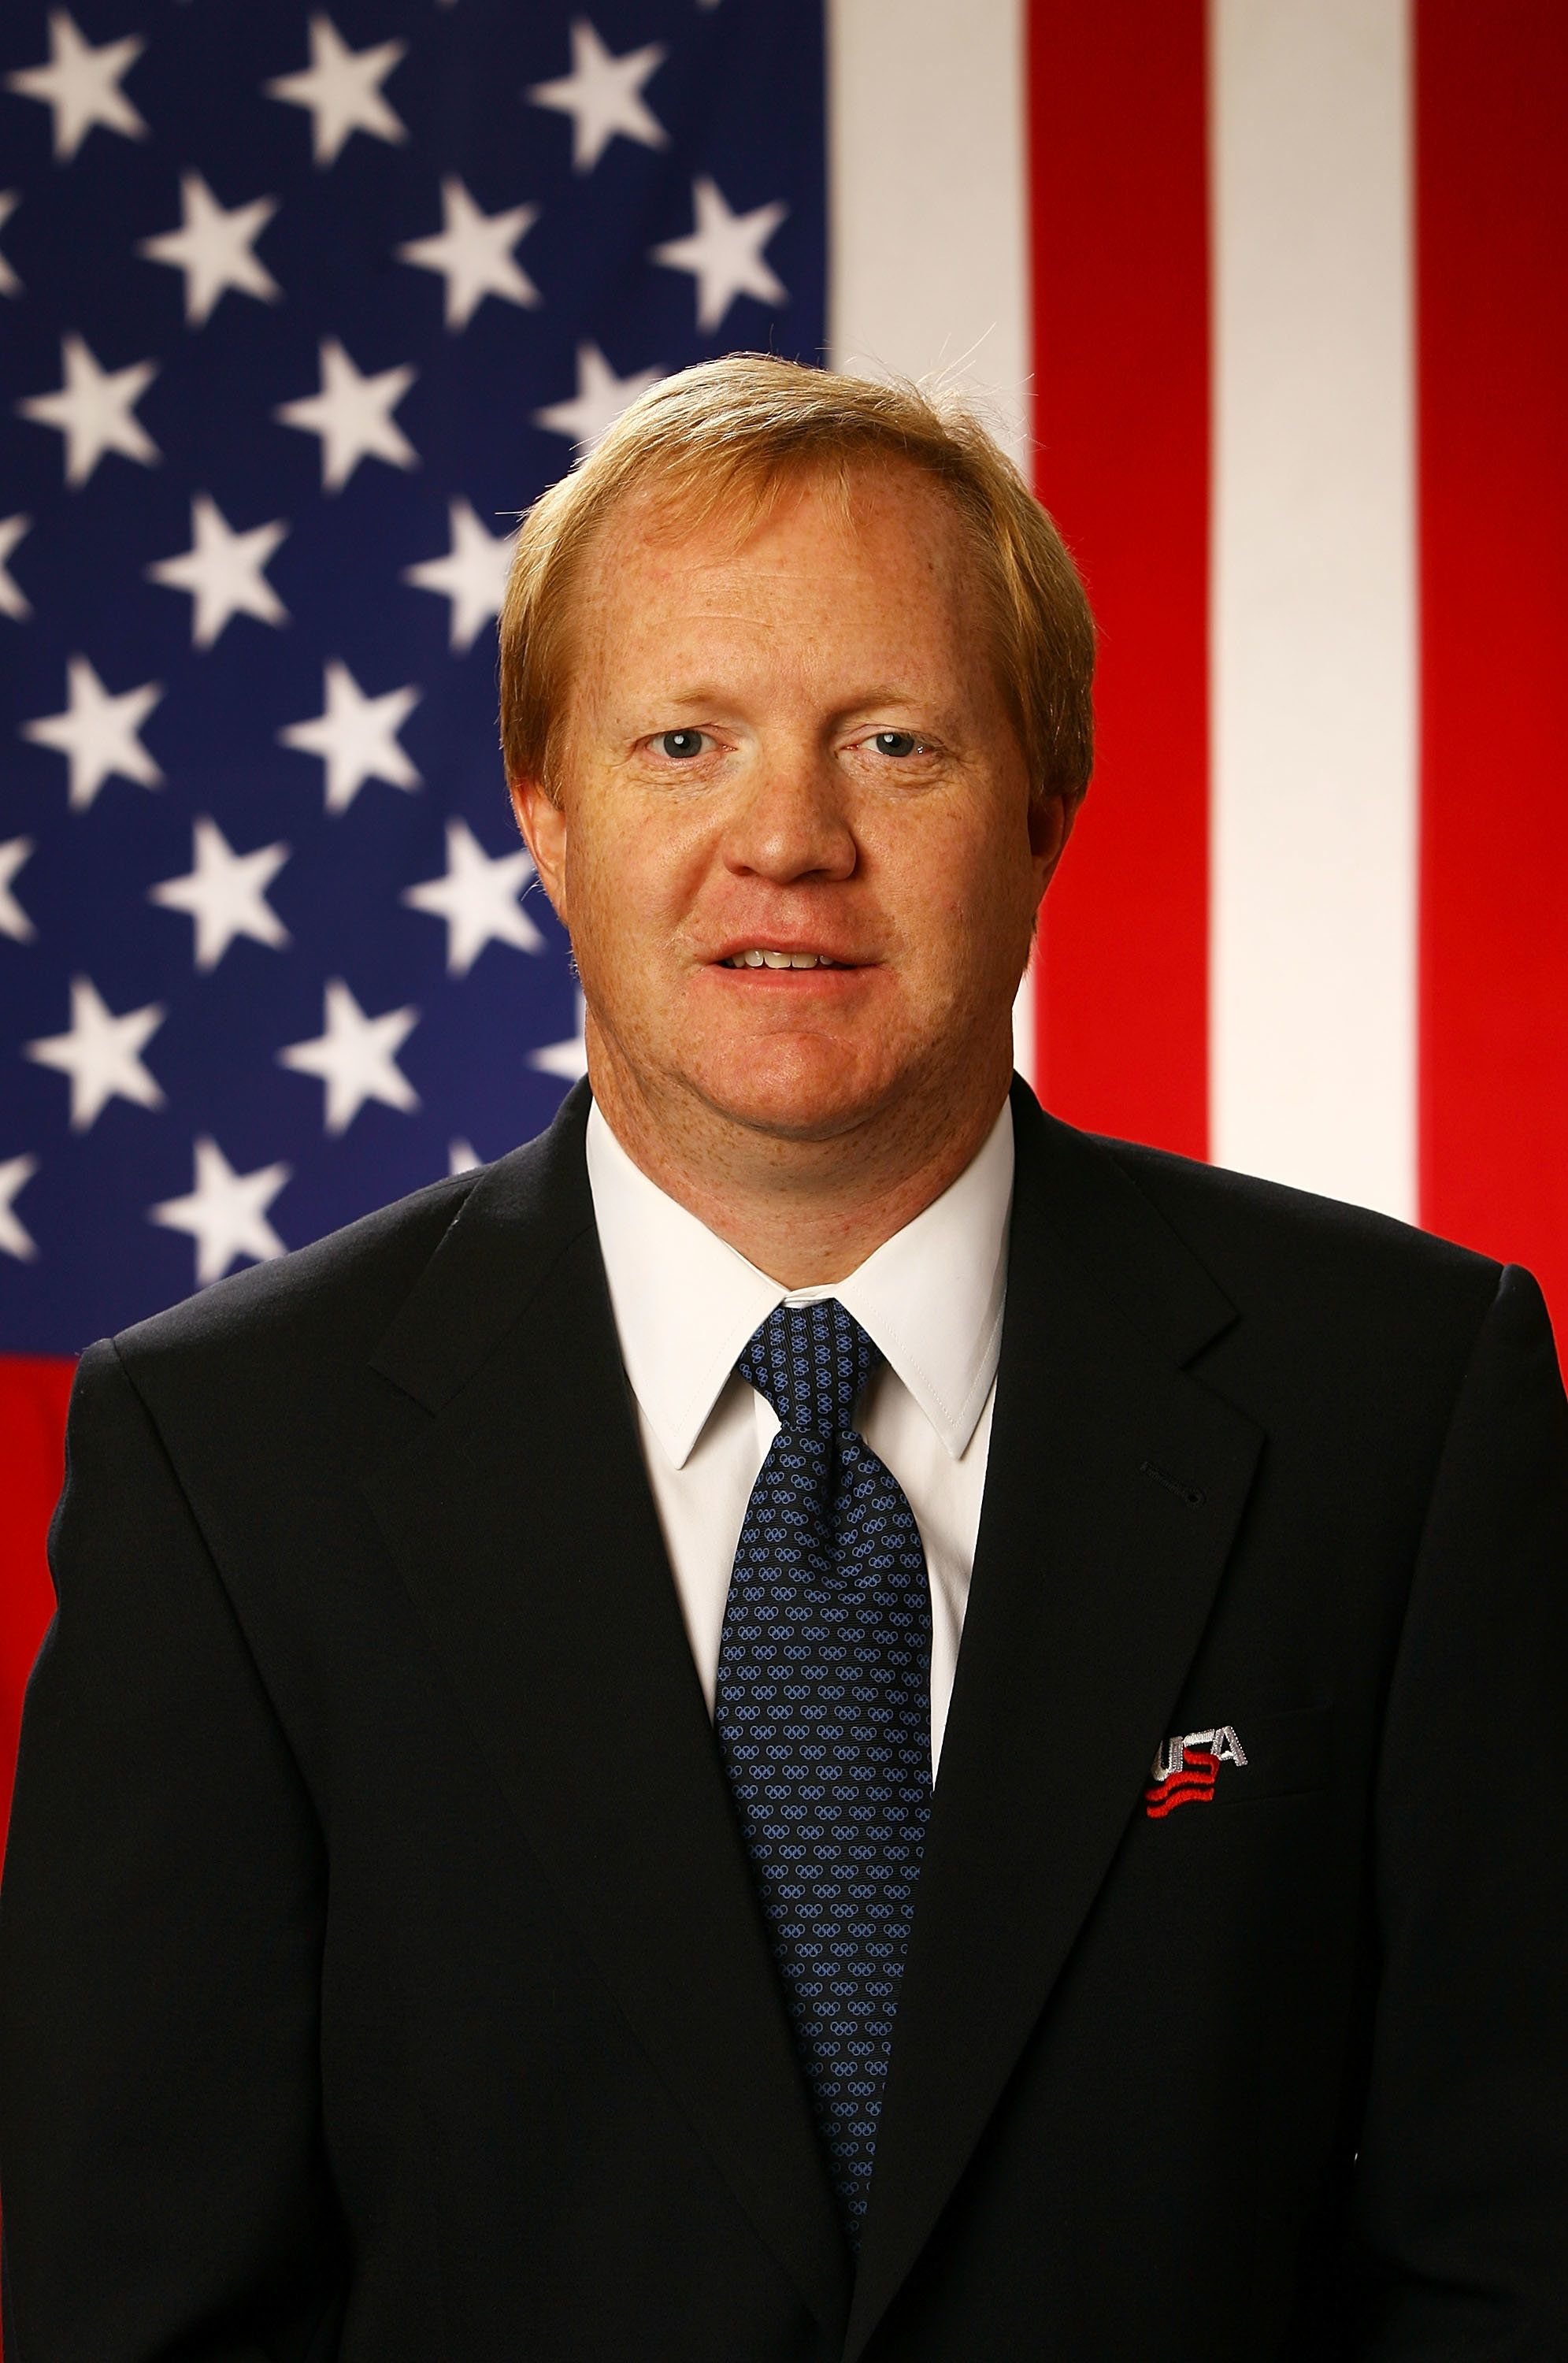 WOODRIDGE, IL - AUGUST 19:  Assistant Executive Director of Hockey Operations Jim Johannson poses for a portrait during the USA Olympic Men's Ice Hockey Orientation Camp on August 19, 2009 at Seven Bridges Ice Arena in Woodridge, Illinois.  (Photo by Jamie Squire/Getty Images)